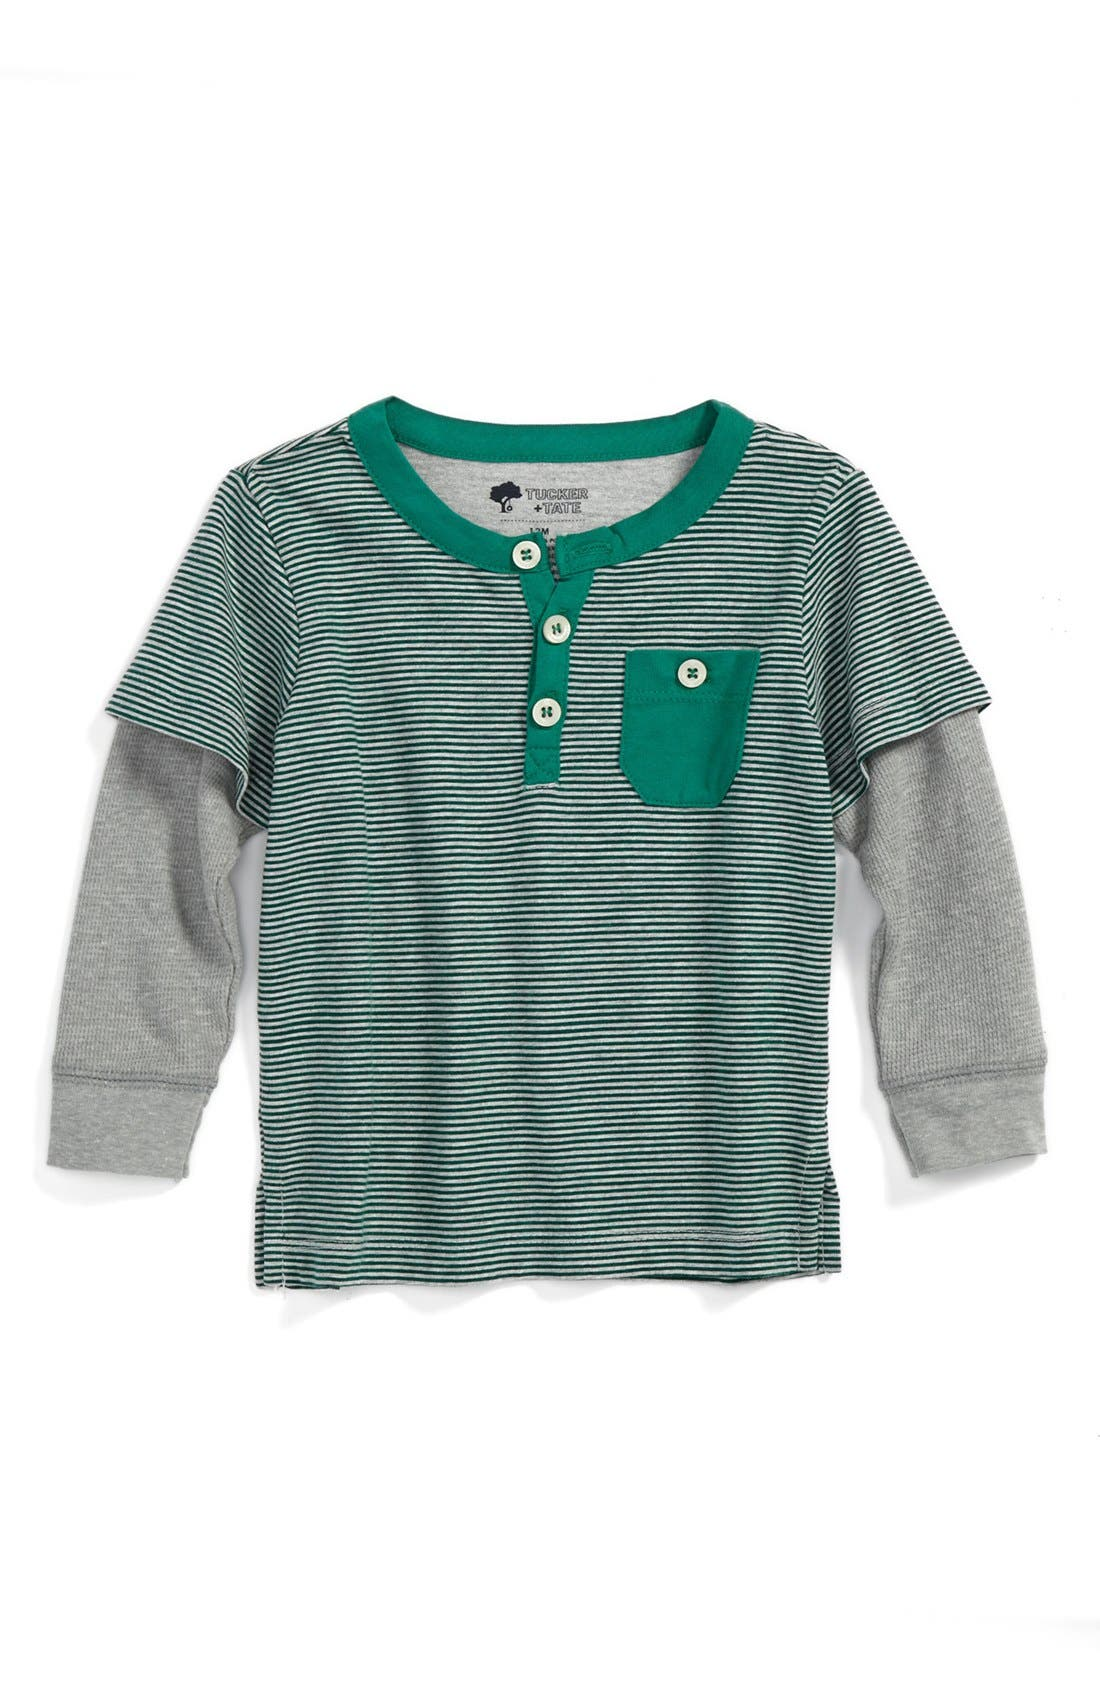 Alternate Image 1 Selected - Tucker + Tate 'Parker Road'  Layered Sleeve Henley T-Shirt (Toddler Boys)